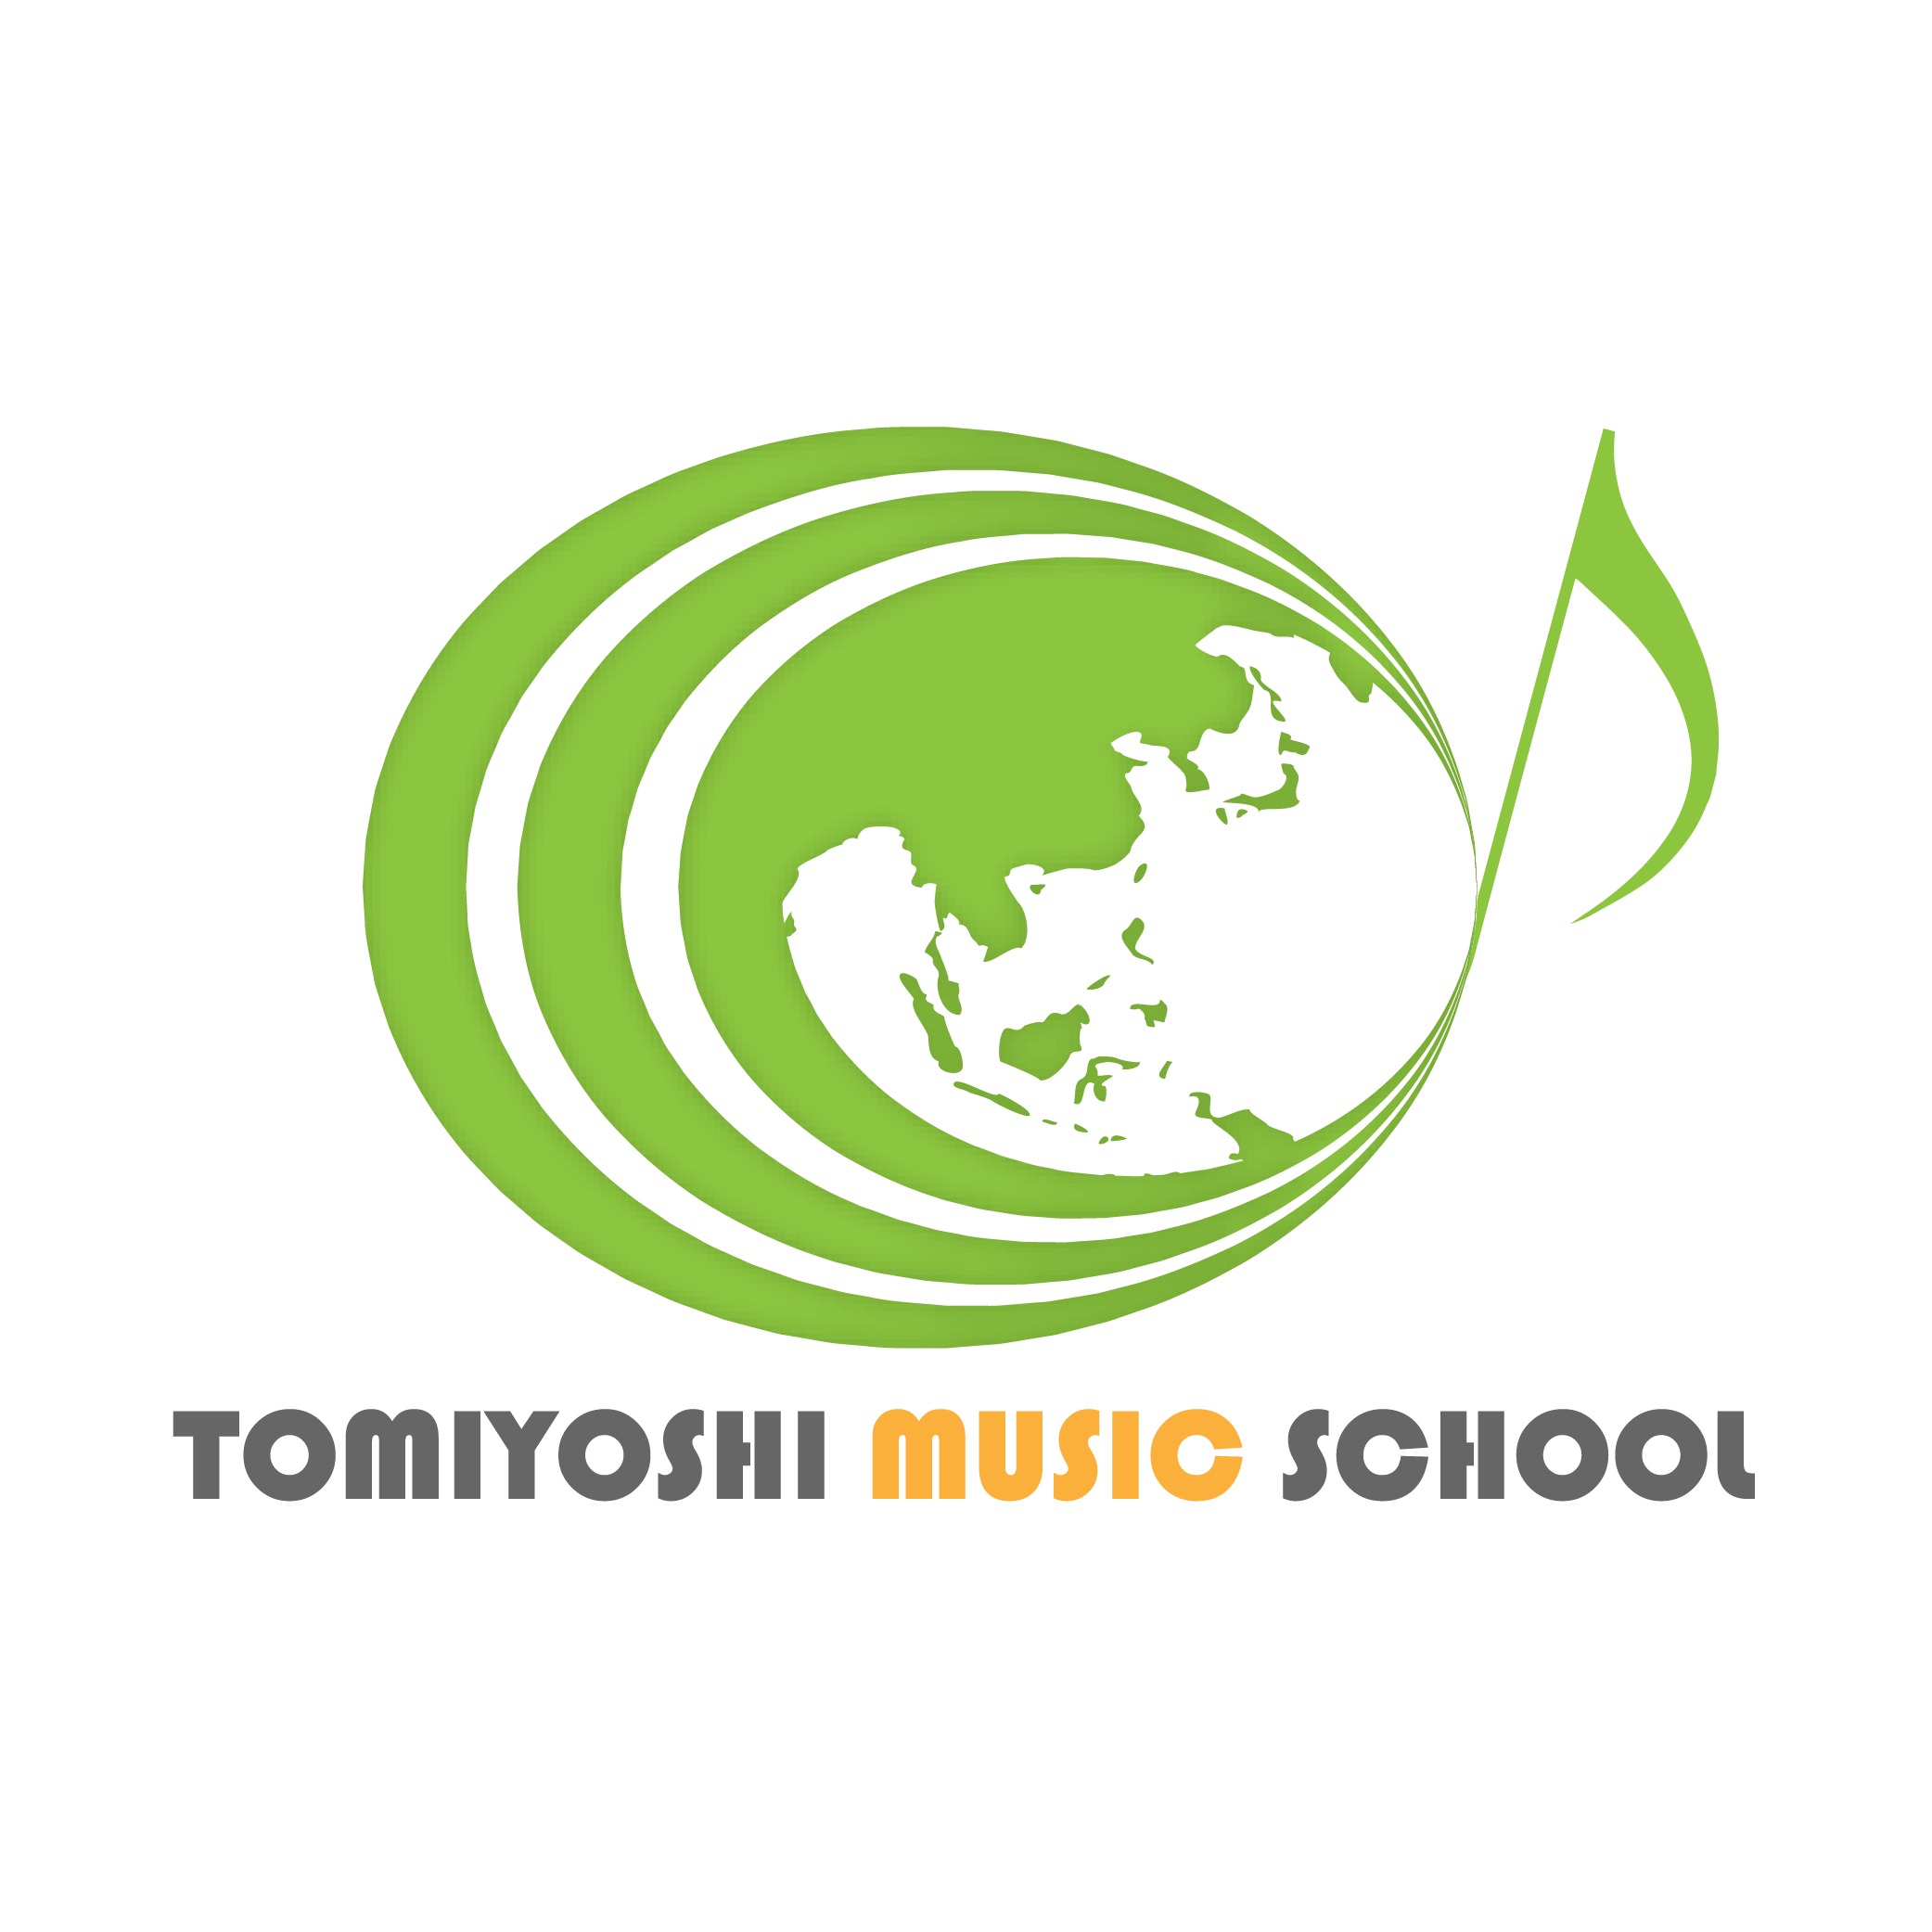 tms_logo_png.png